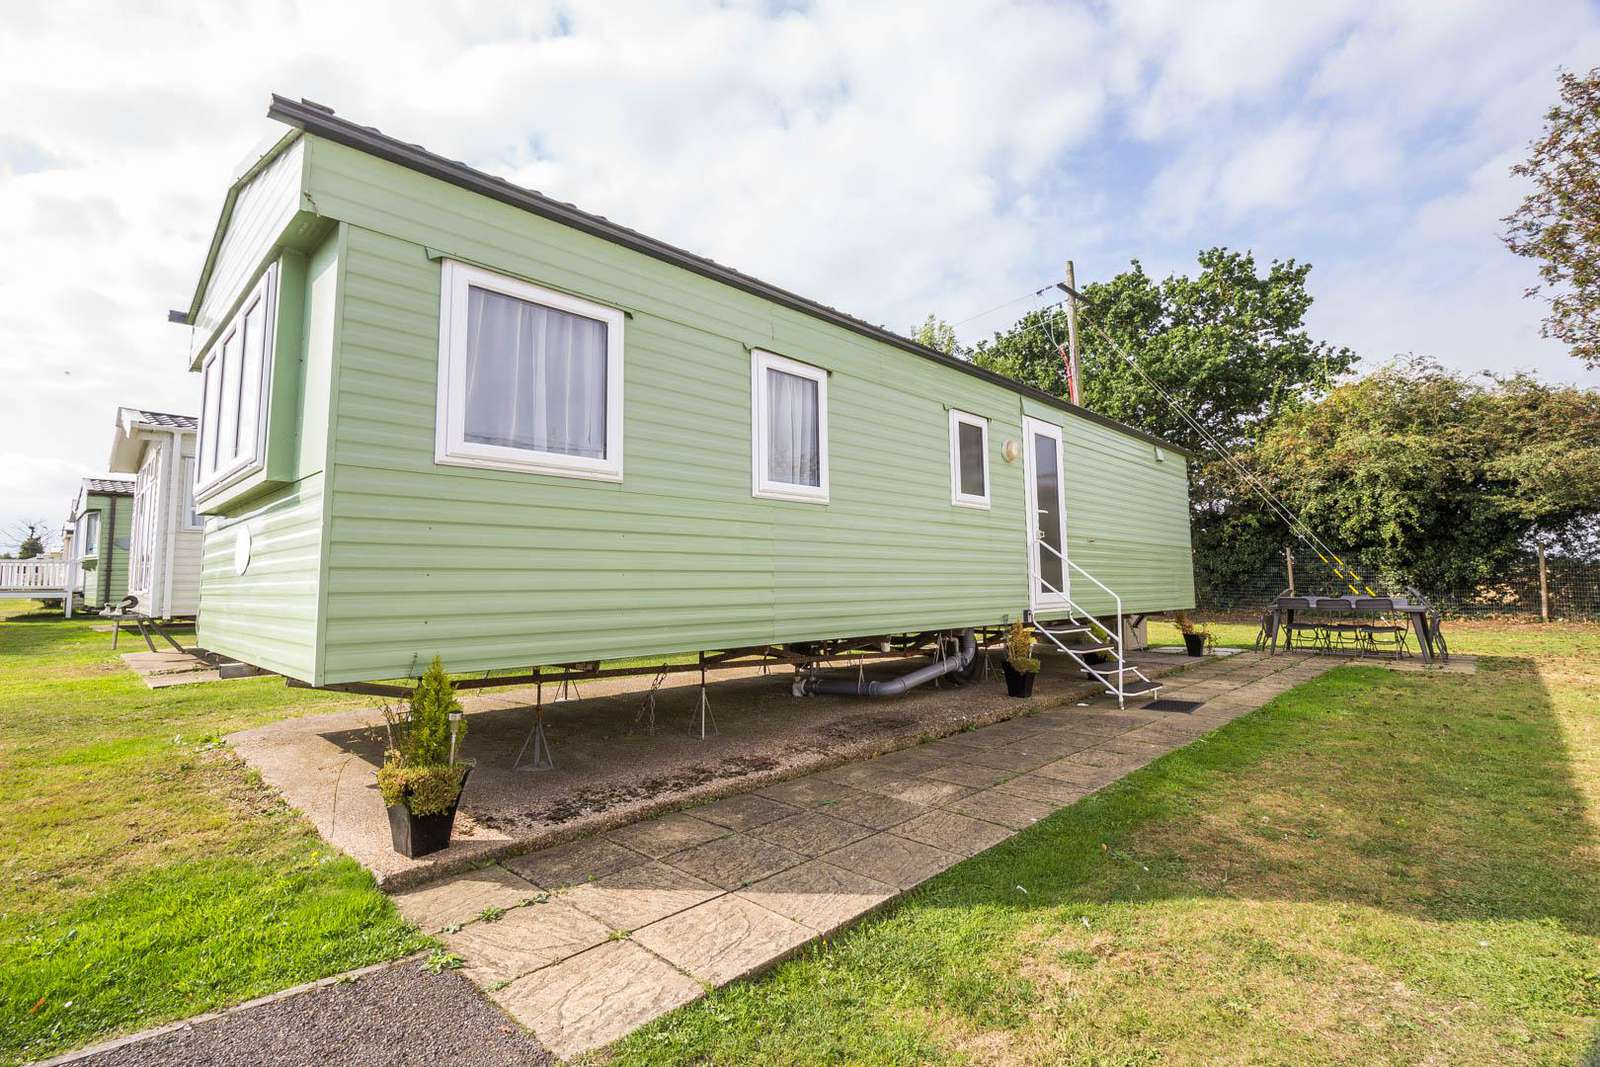 70549C – Cherry, 3 bed, 8 berth caravan with double glazing. Emerald rated. - property